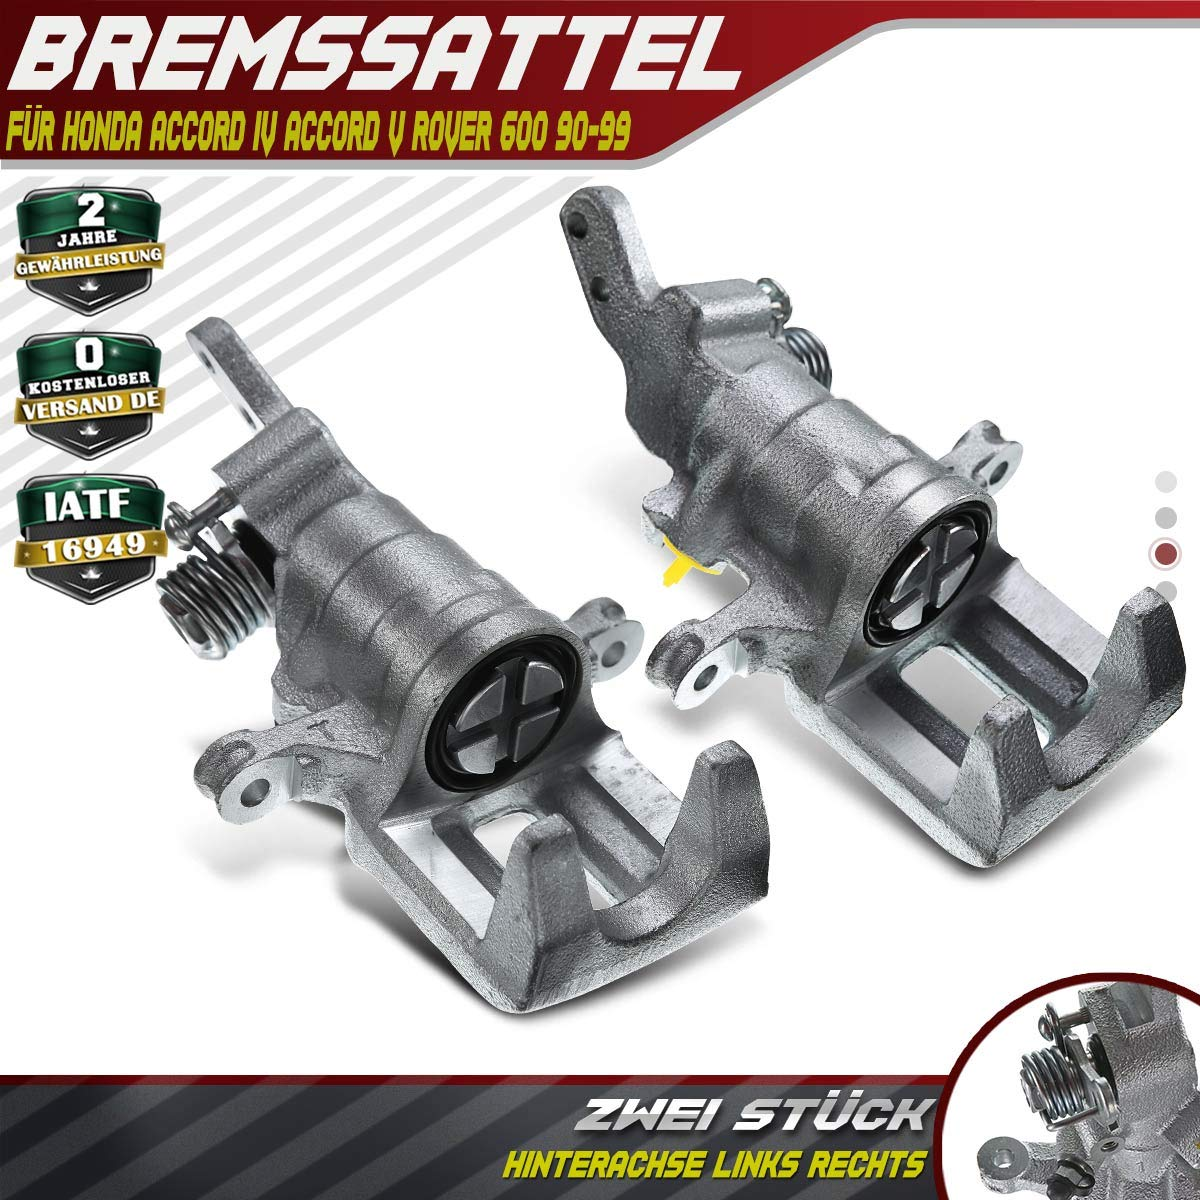 2x Bremssattel Hinten Links Rechts f/ür Accord IV Aerodeck CB Coupe CC1 Accord V CC CD CC7 CD CE CF Coupe CD7 CD9 618 620 623 RH 1990-1999 43013SN7G00